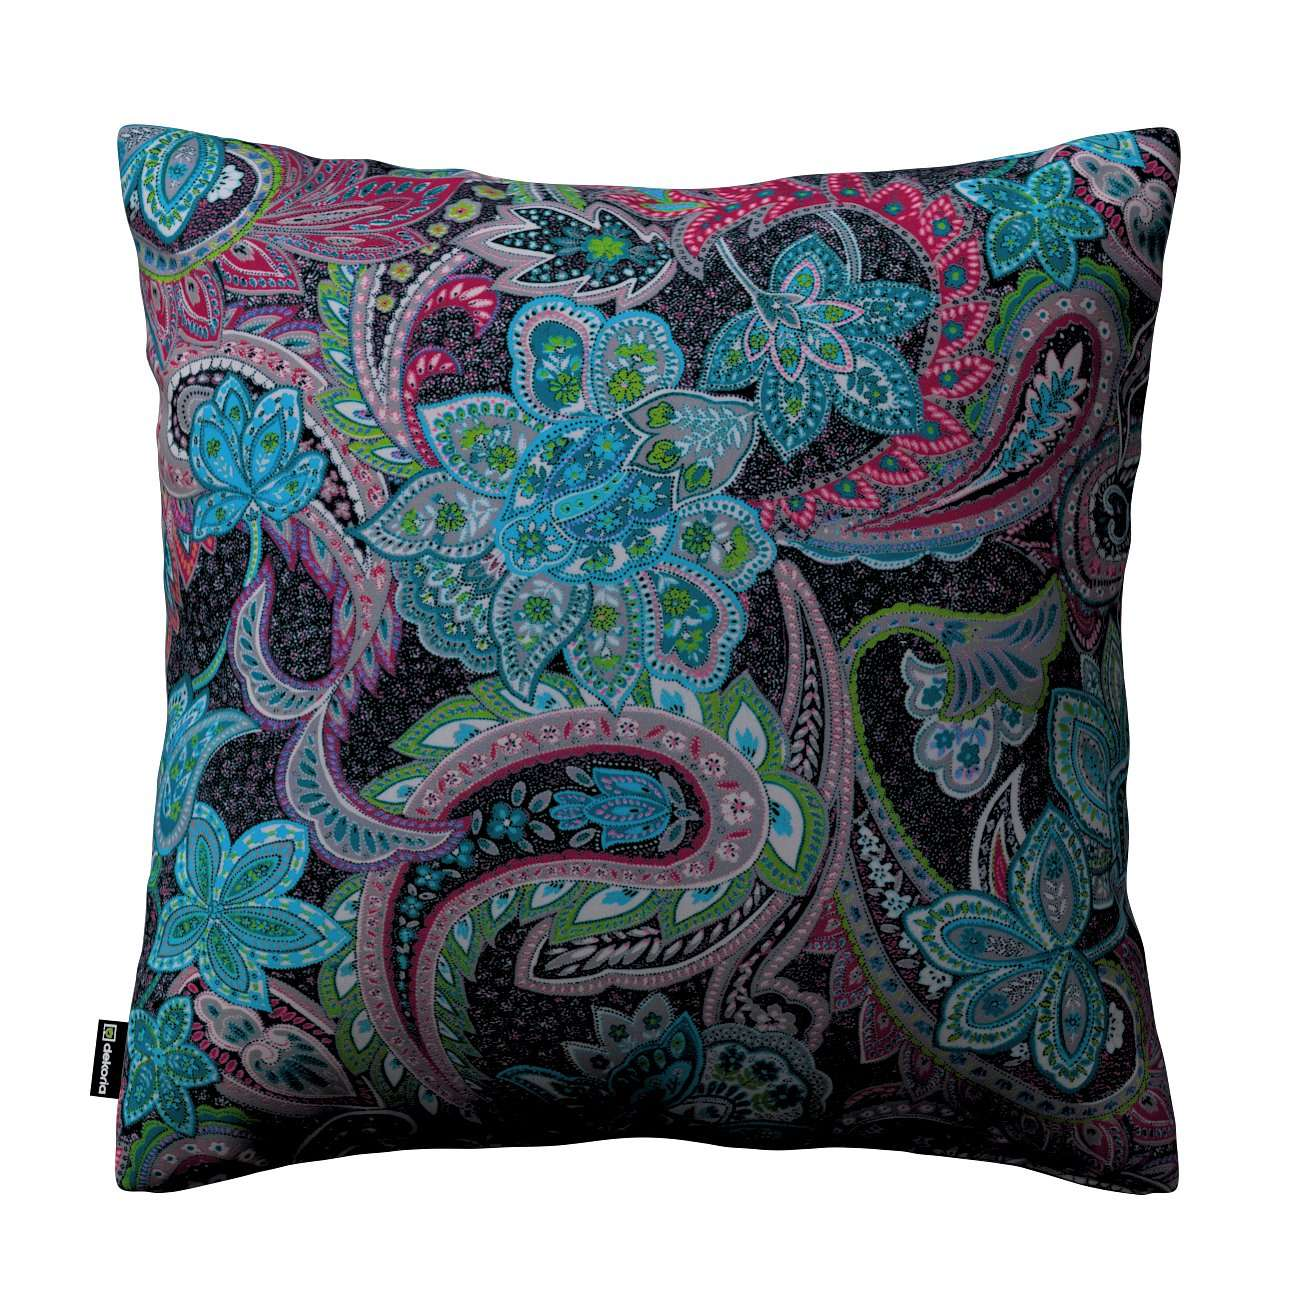 Kinga cushion cover in collection Velvet, fabric: 704-22